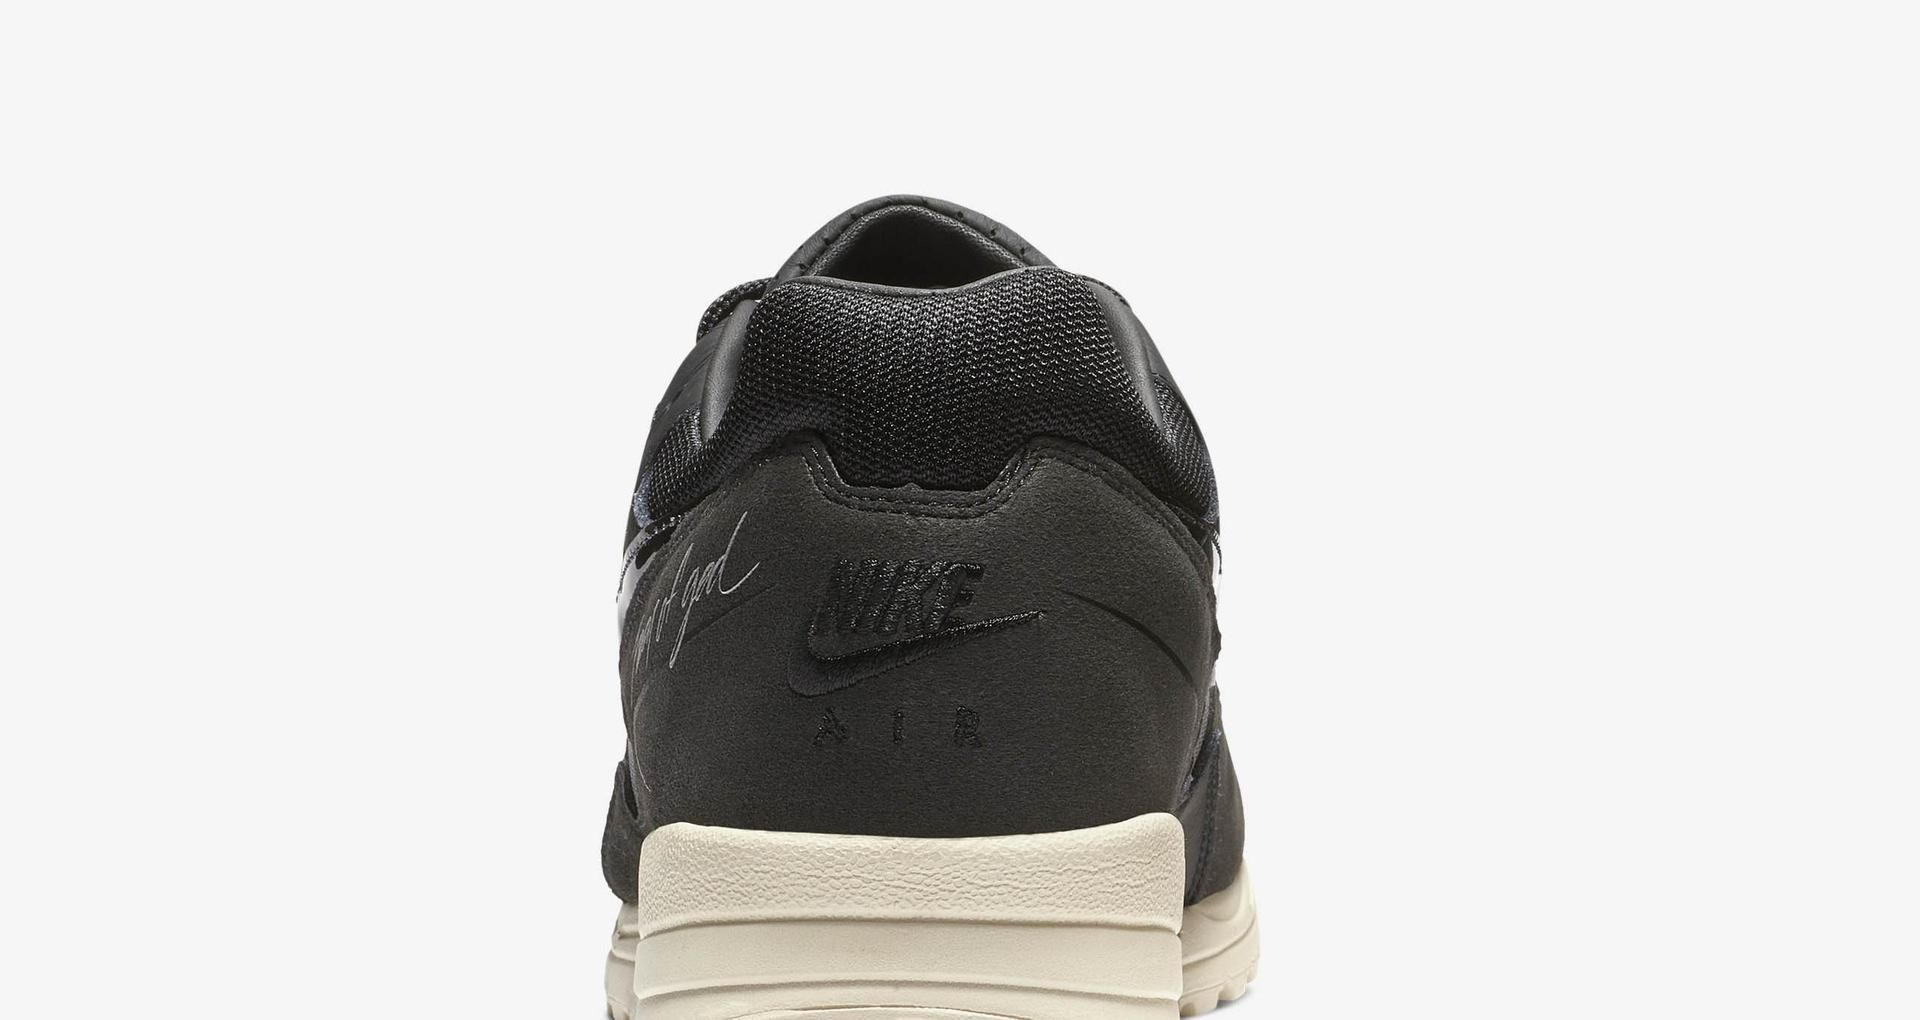 nike-air-skylon-2-fear-of-god-black-bq2752-001